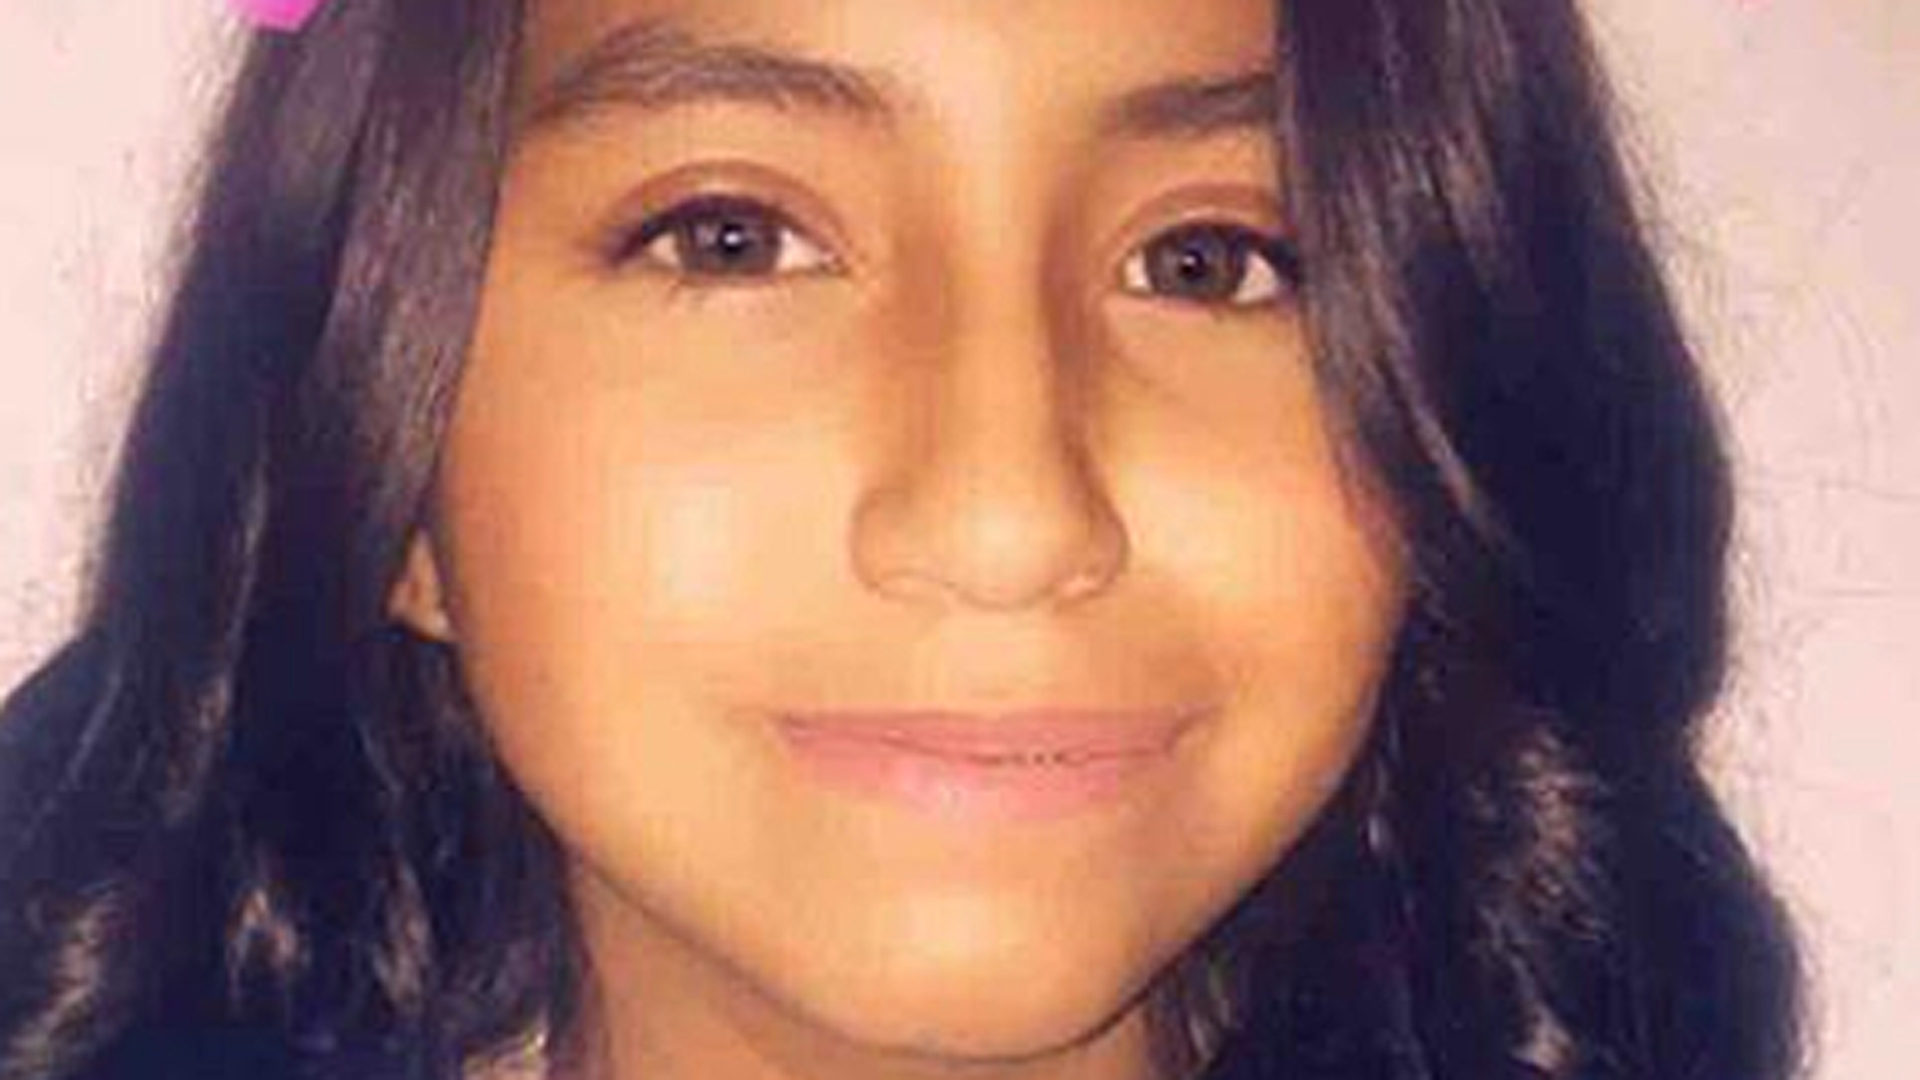 Rosalie Avila is seen in an image posted to a GoFundMe page.